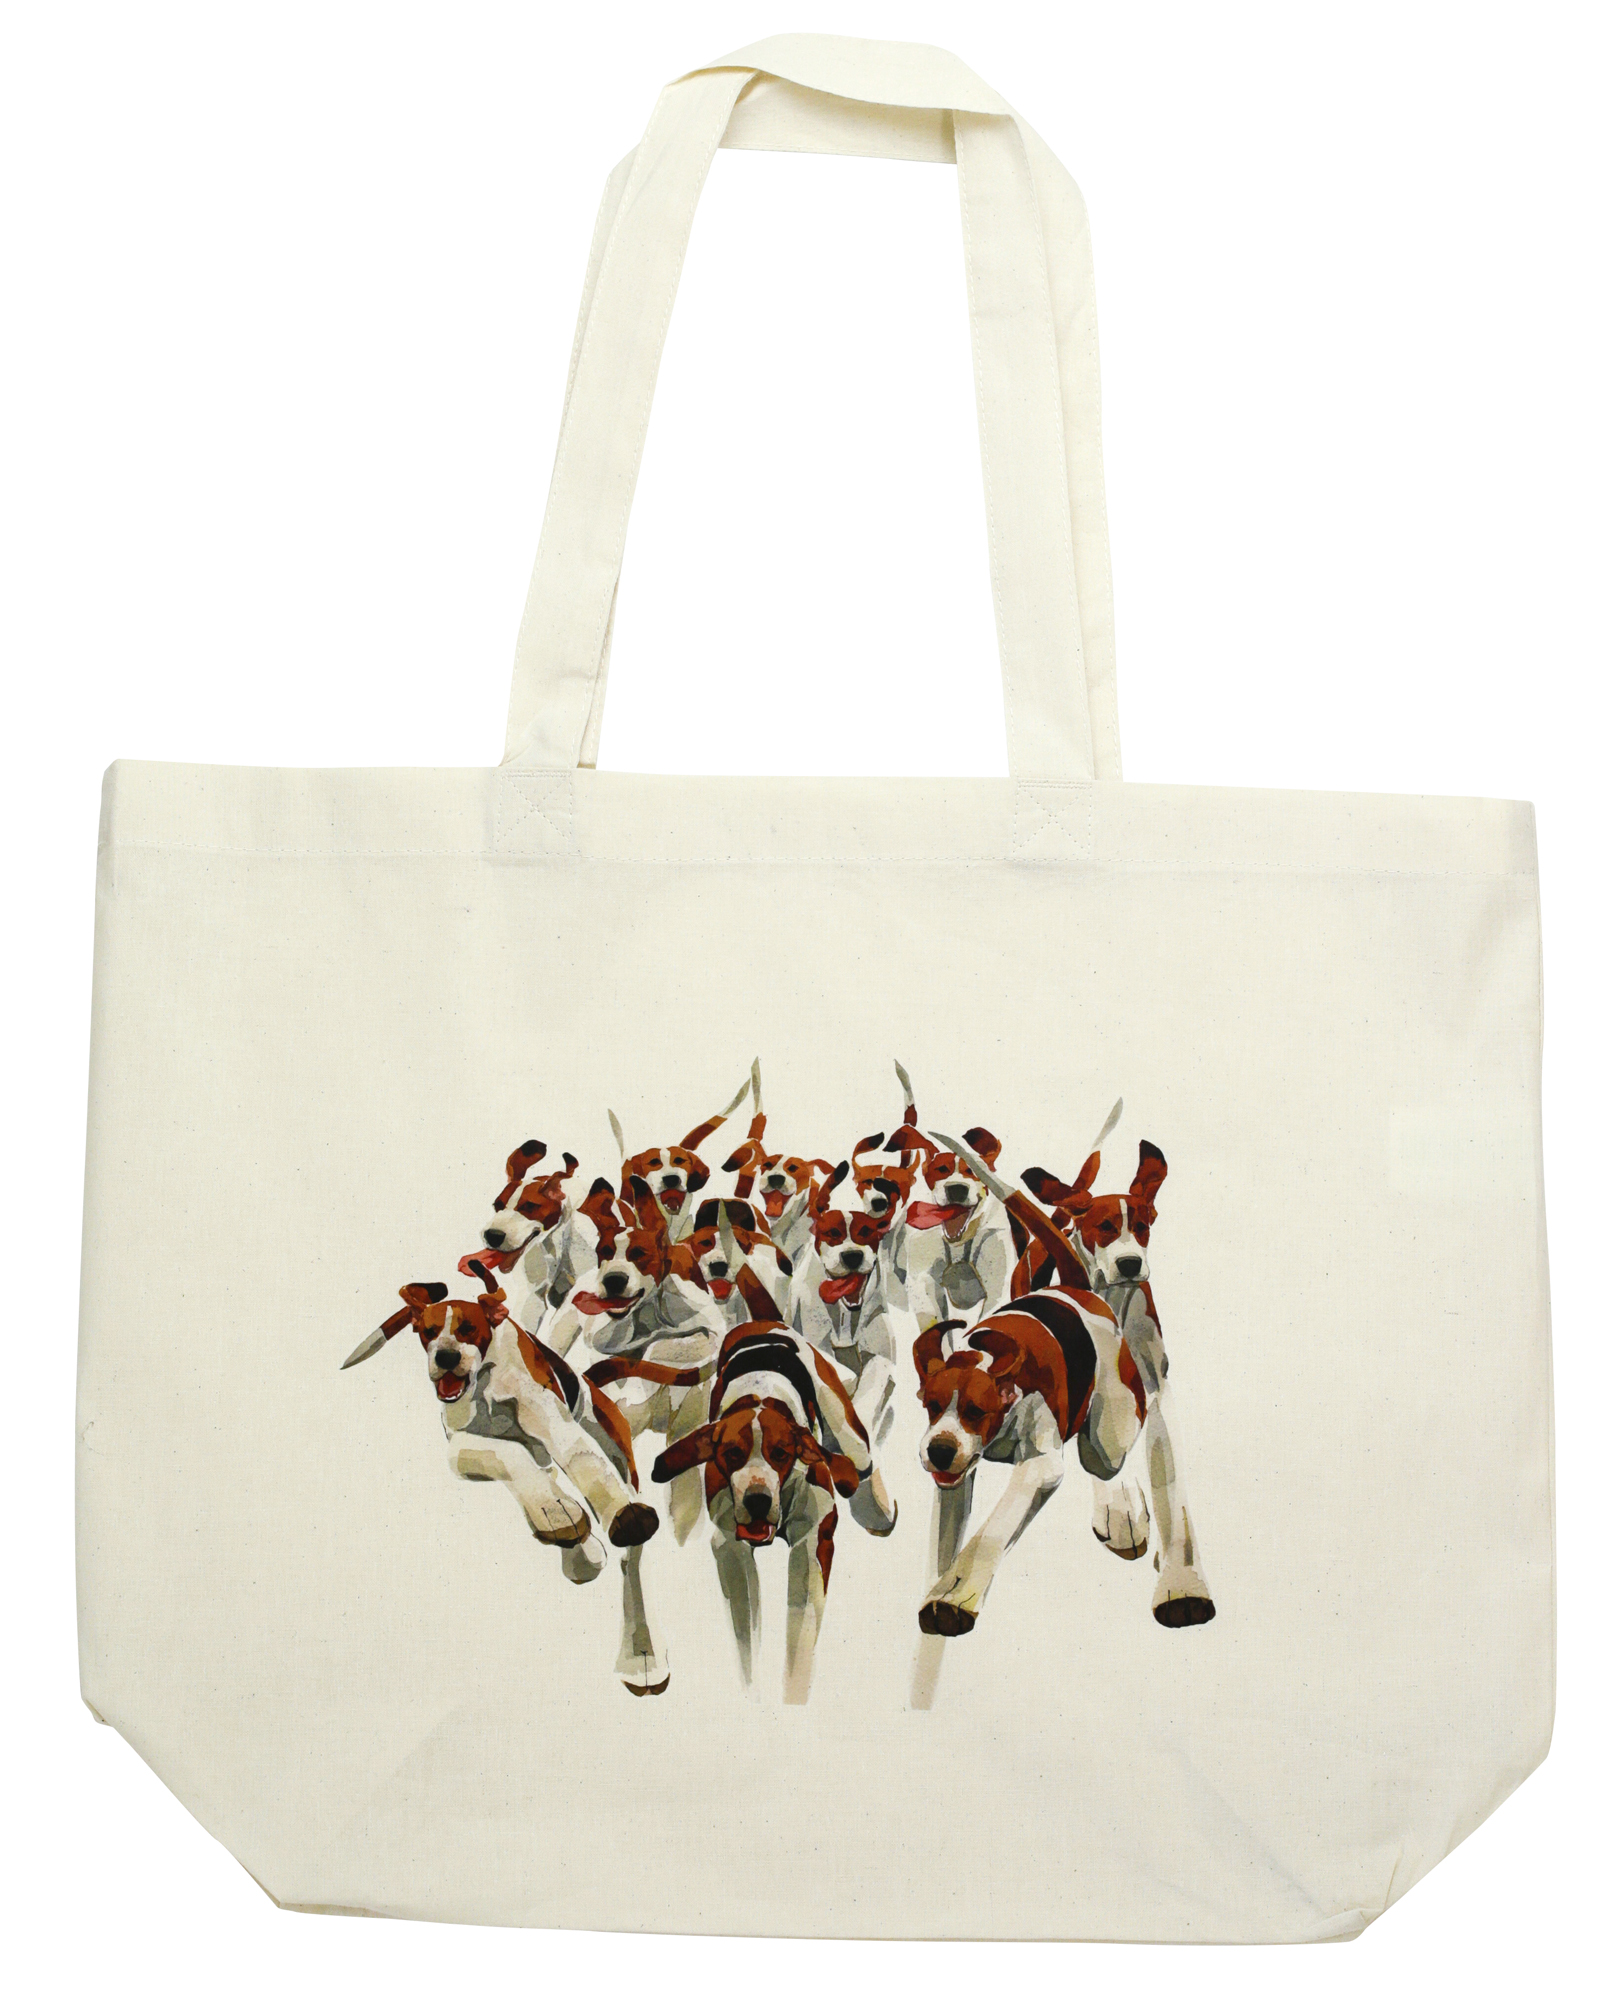 Bag for Life, Hounds image